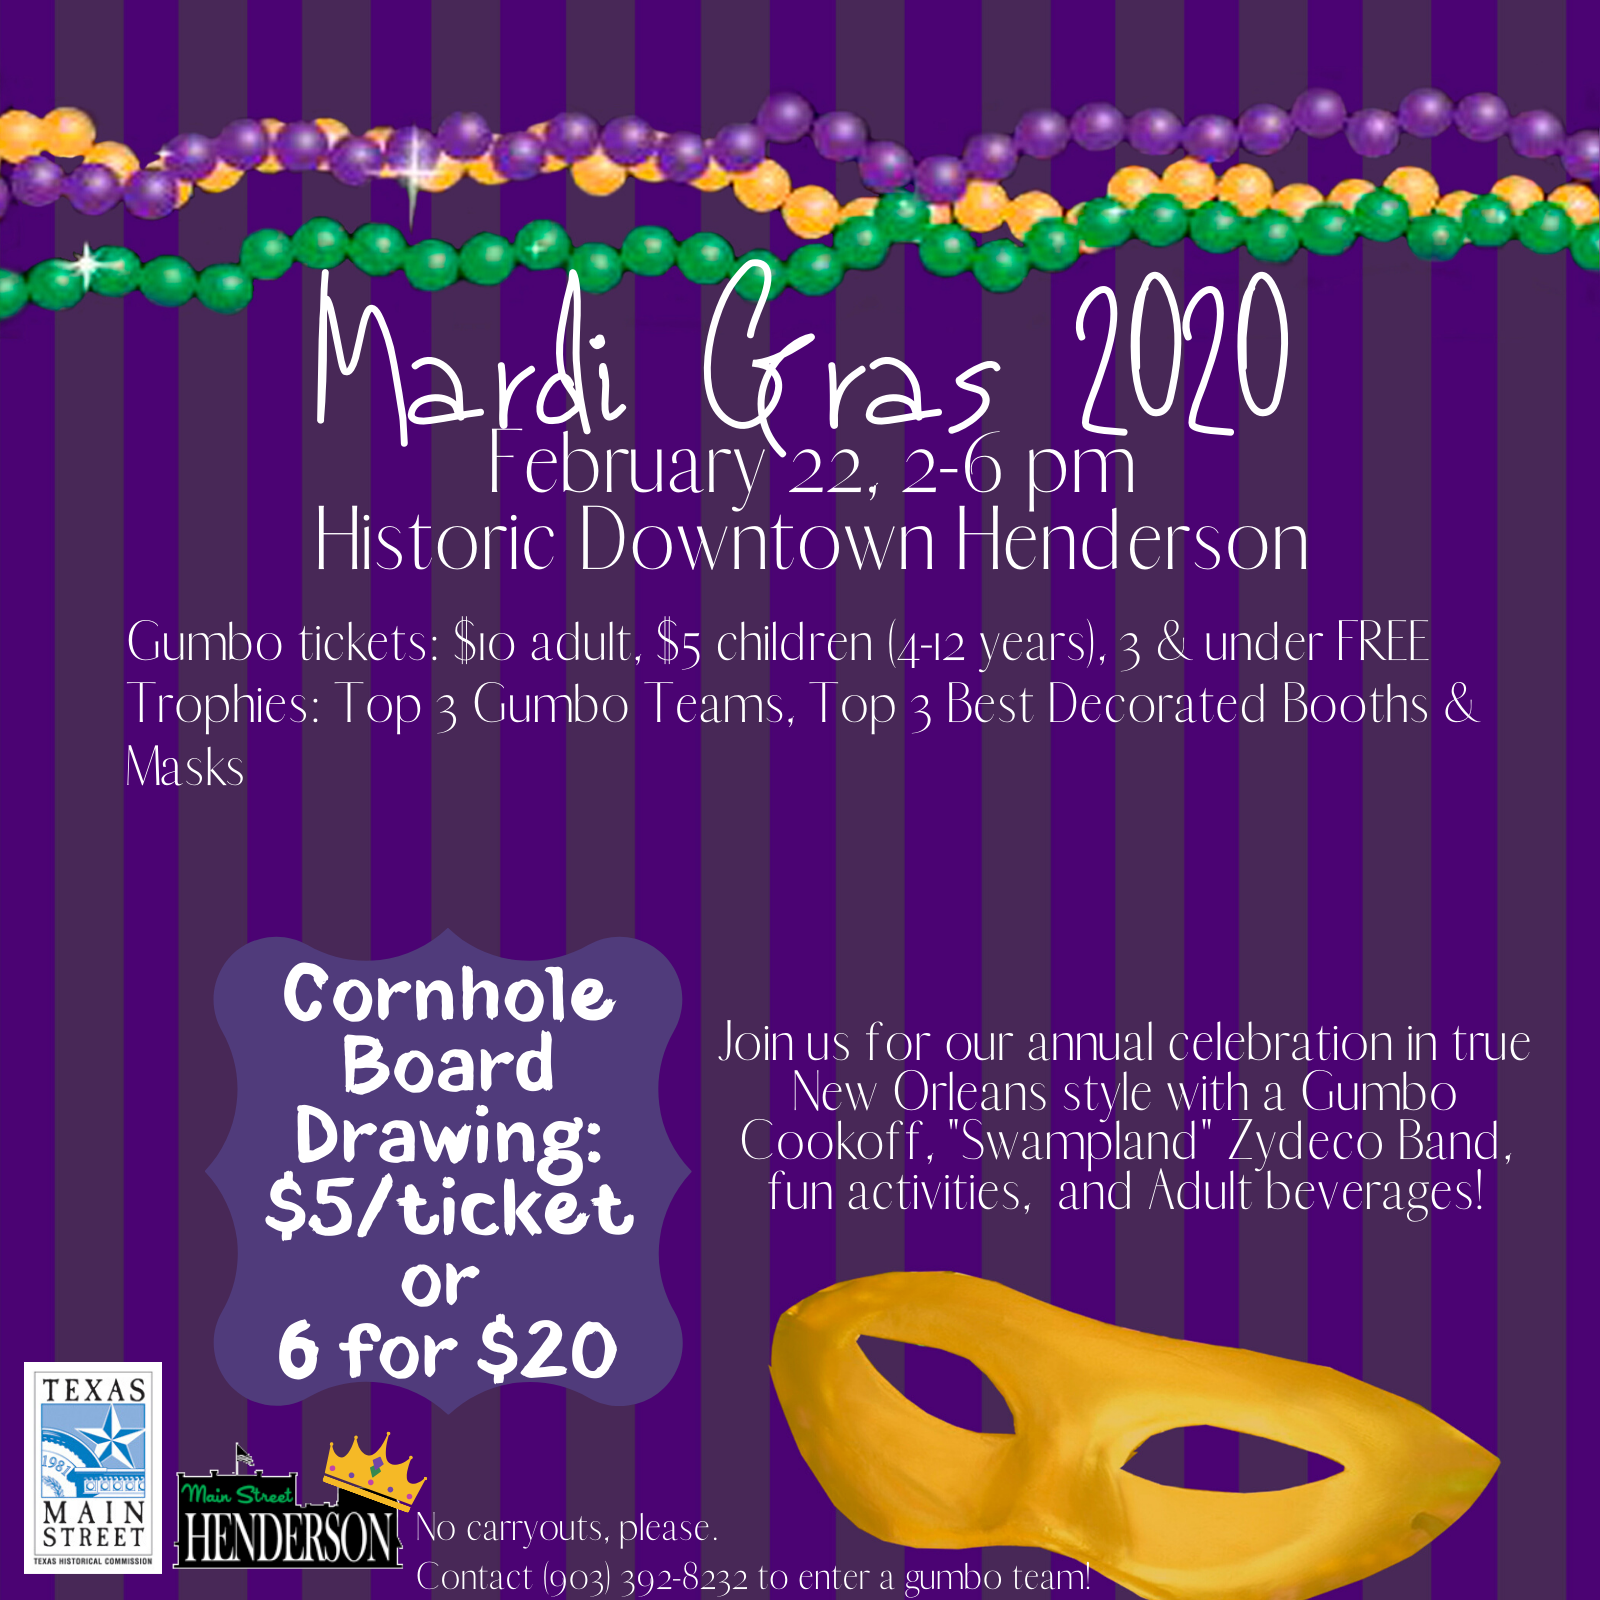 Mardi Gras Event Downtown Henderson on February 22 2020